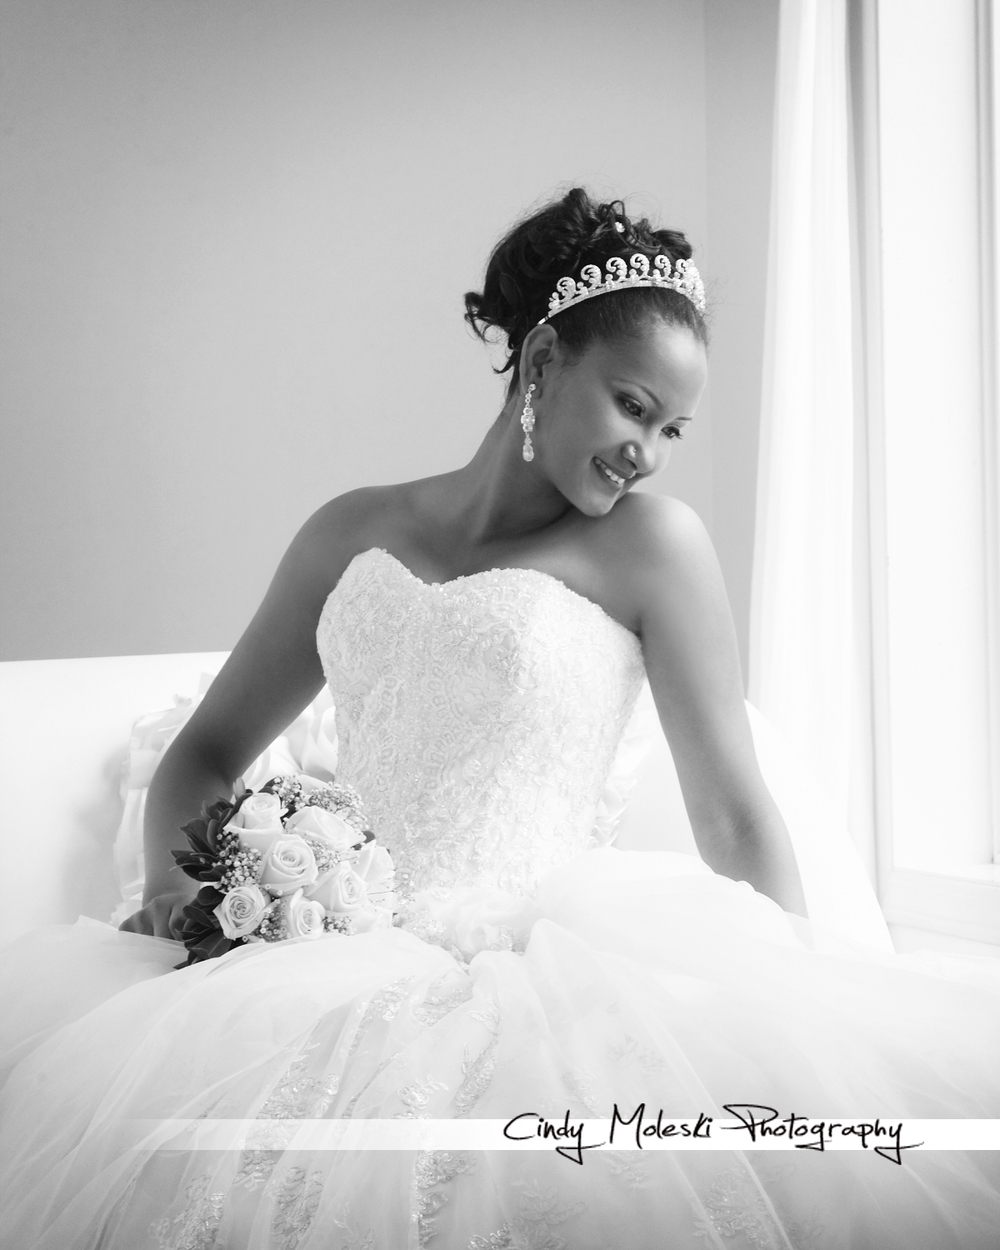 professional-wedding-photographer-saskatoon-cindy-moleski-9605Zemicheal.jpg